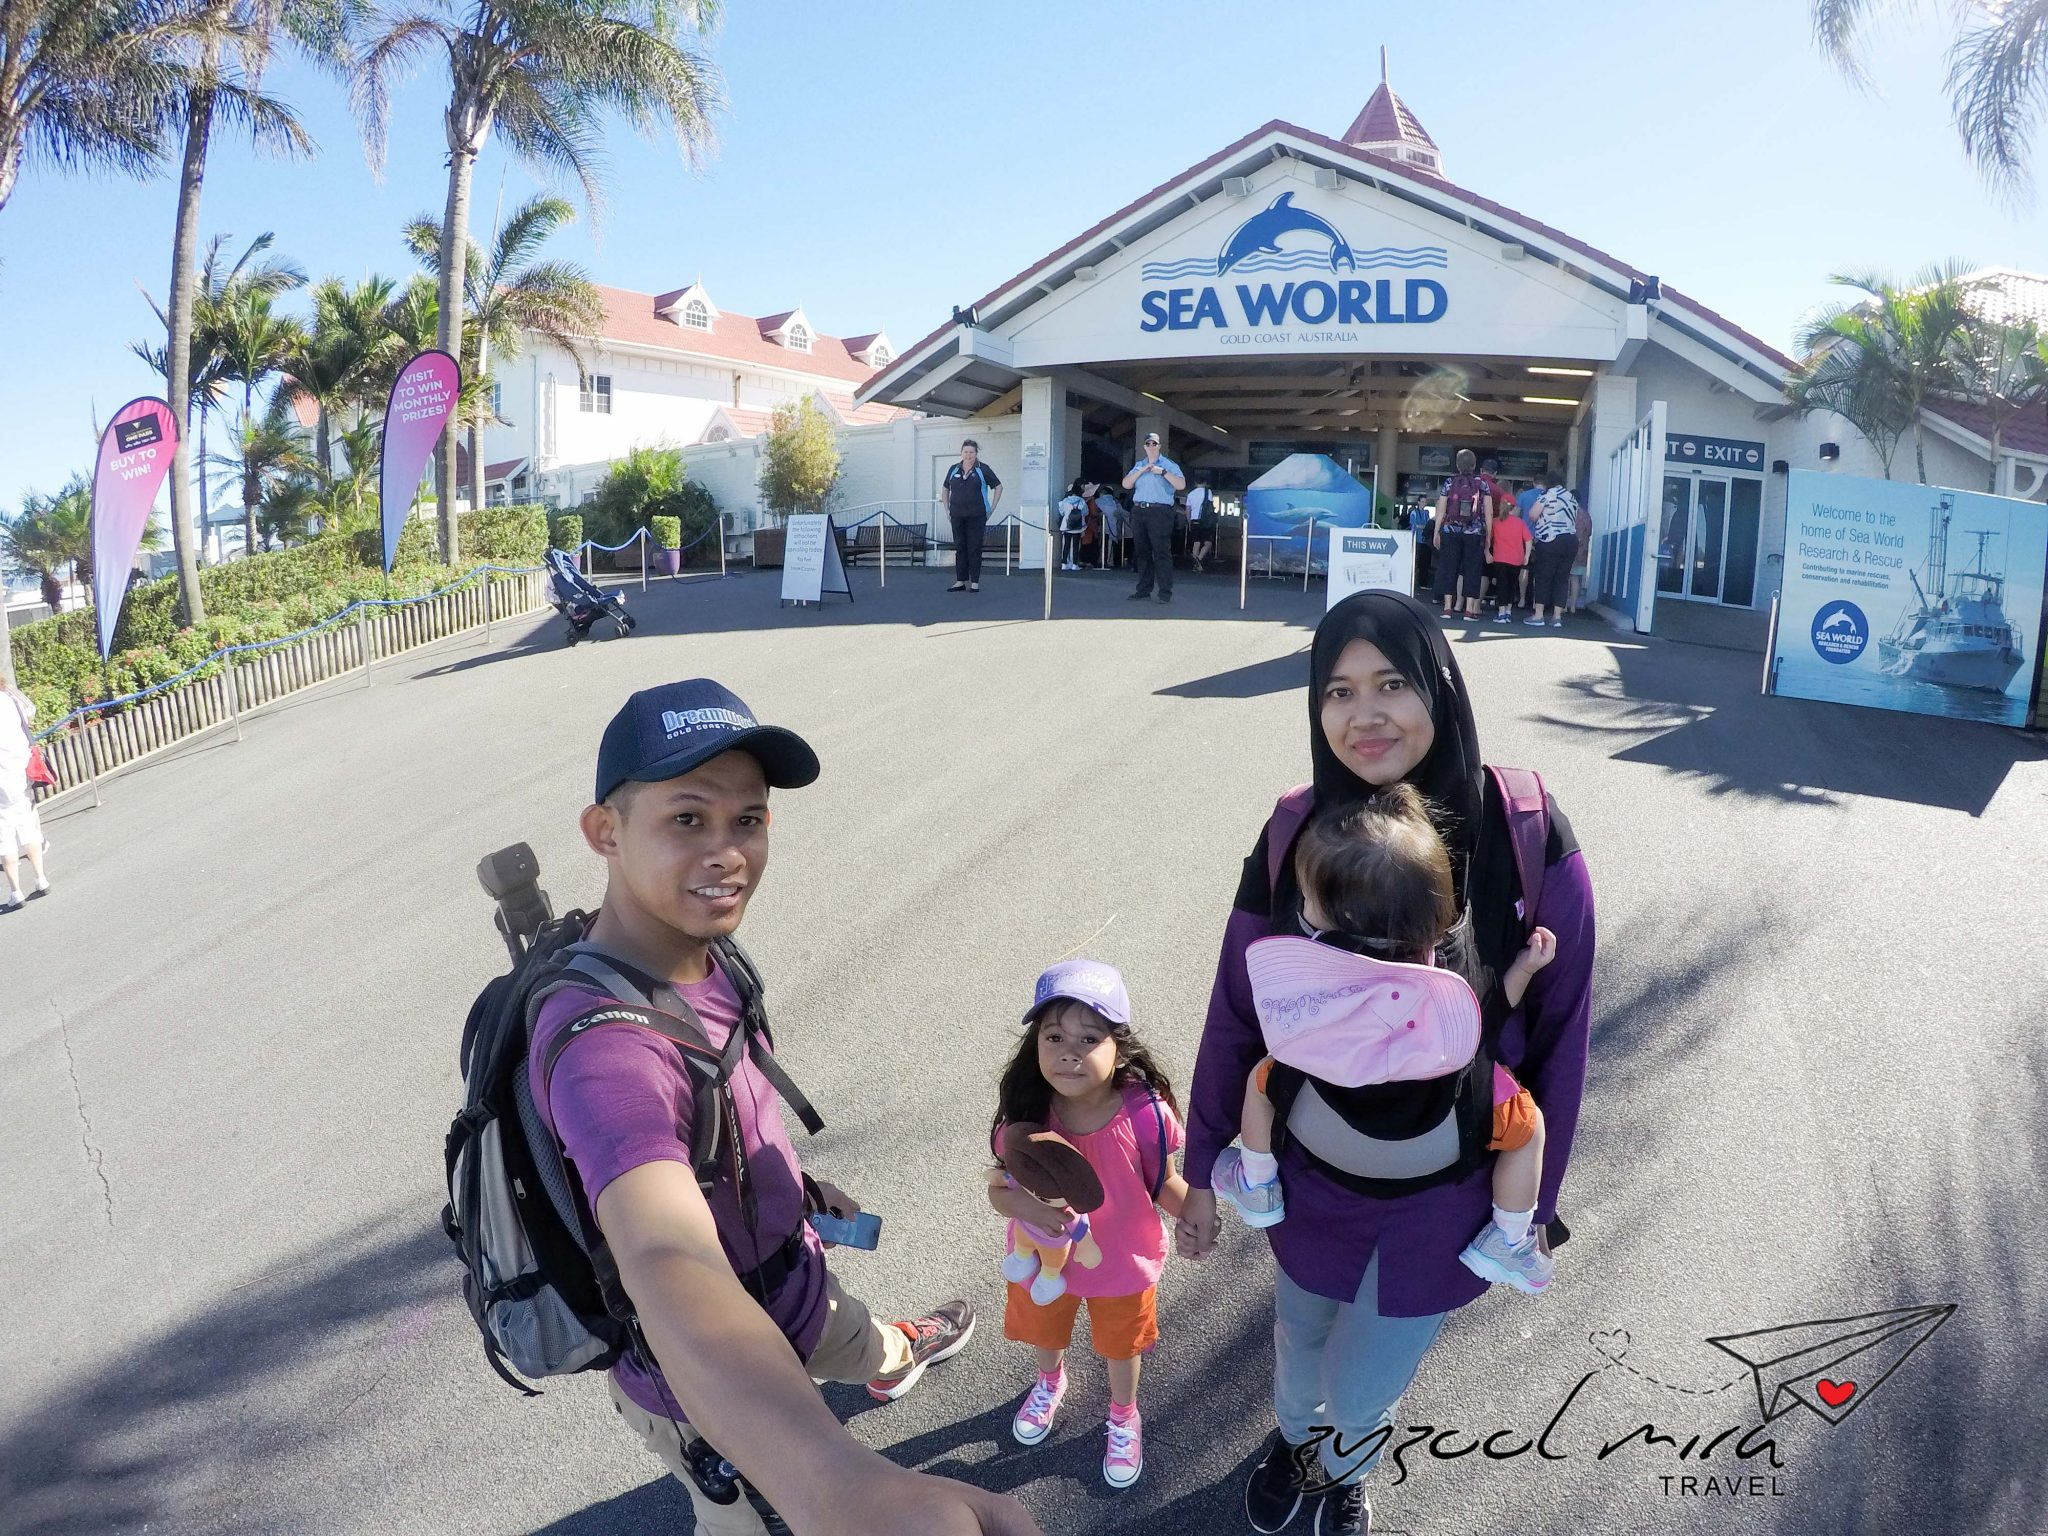 Hari ke-5 seharian di Sea World, Gold Coast Australia